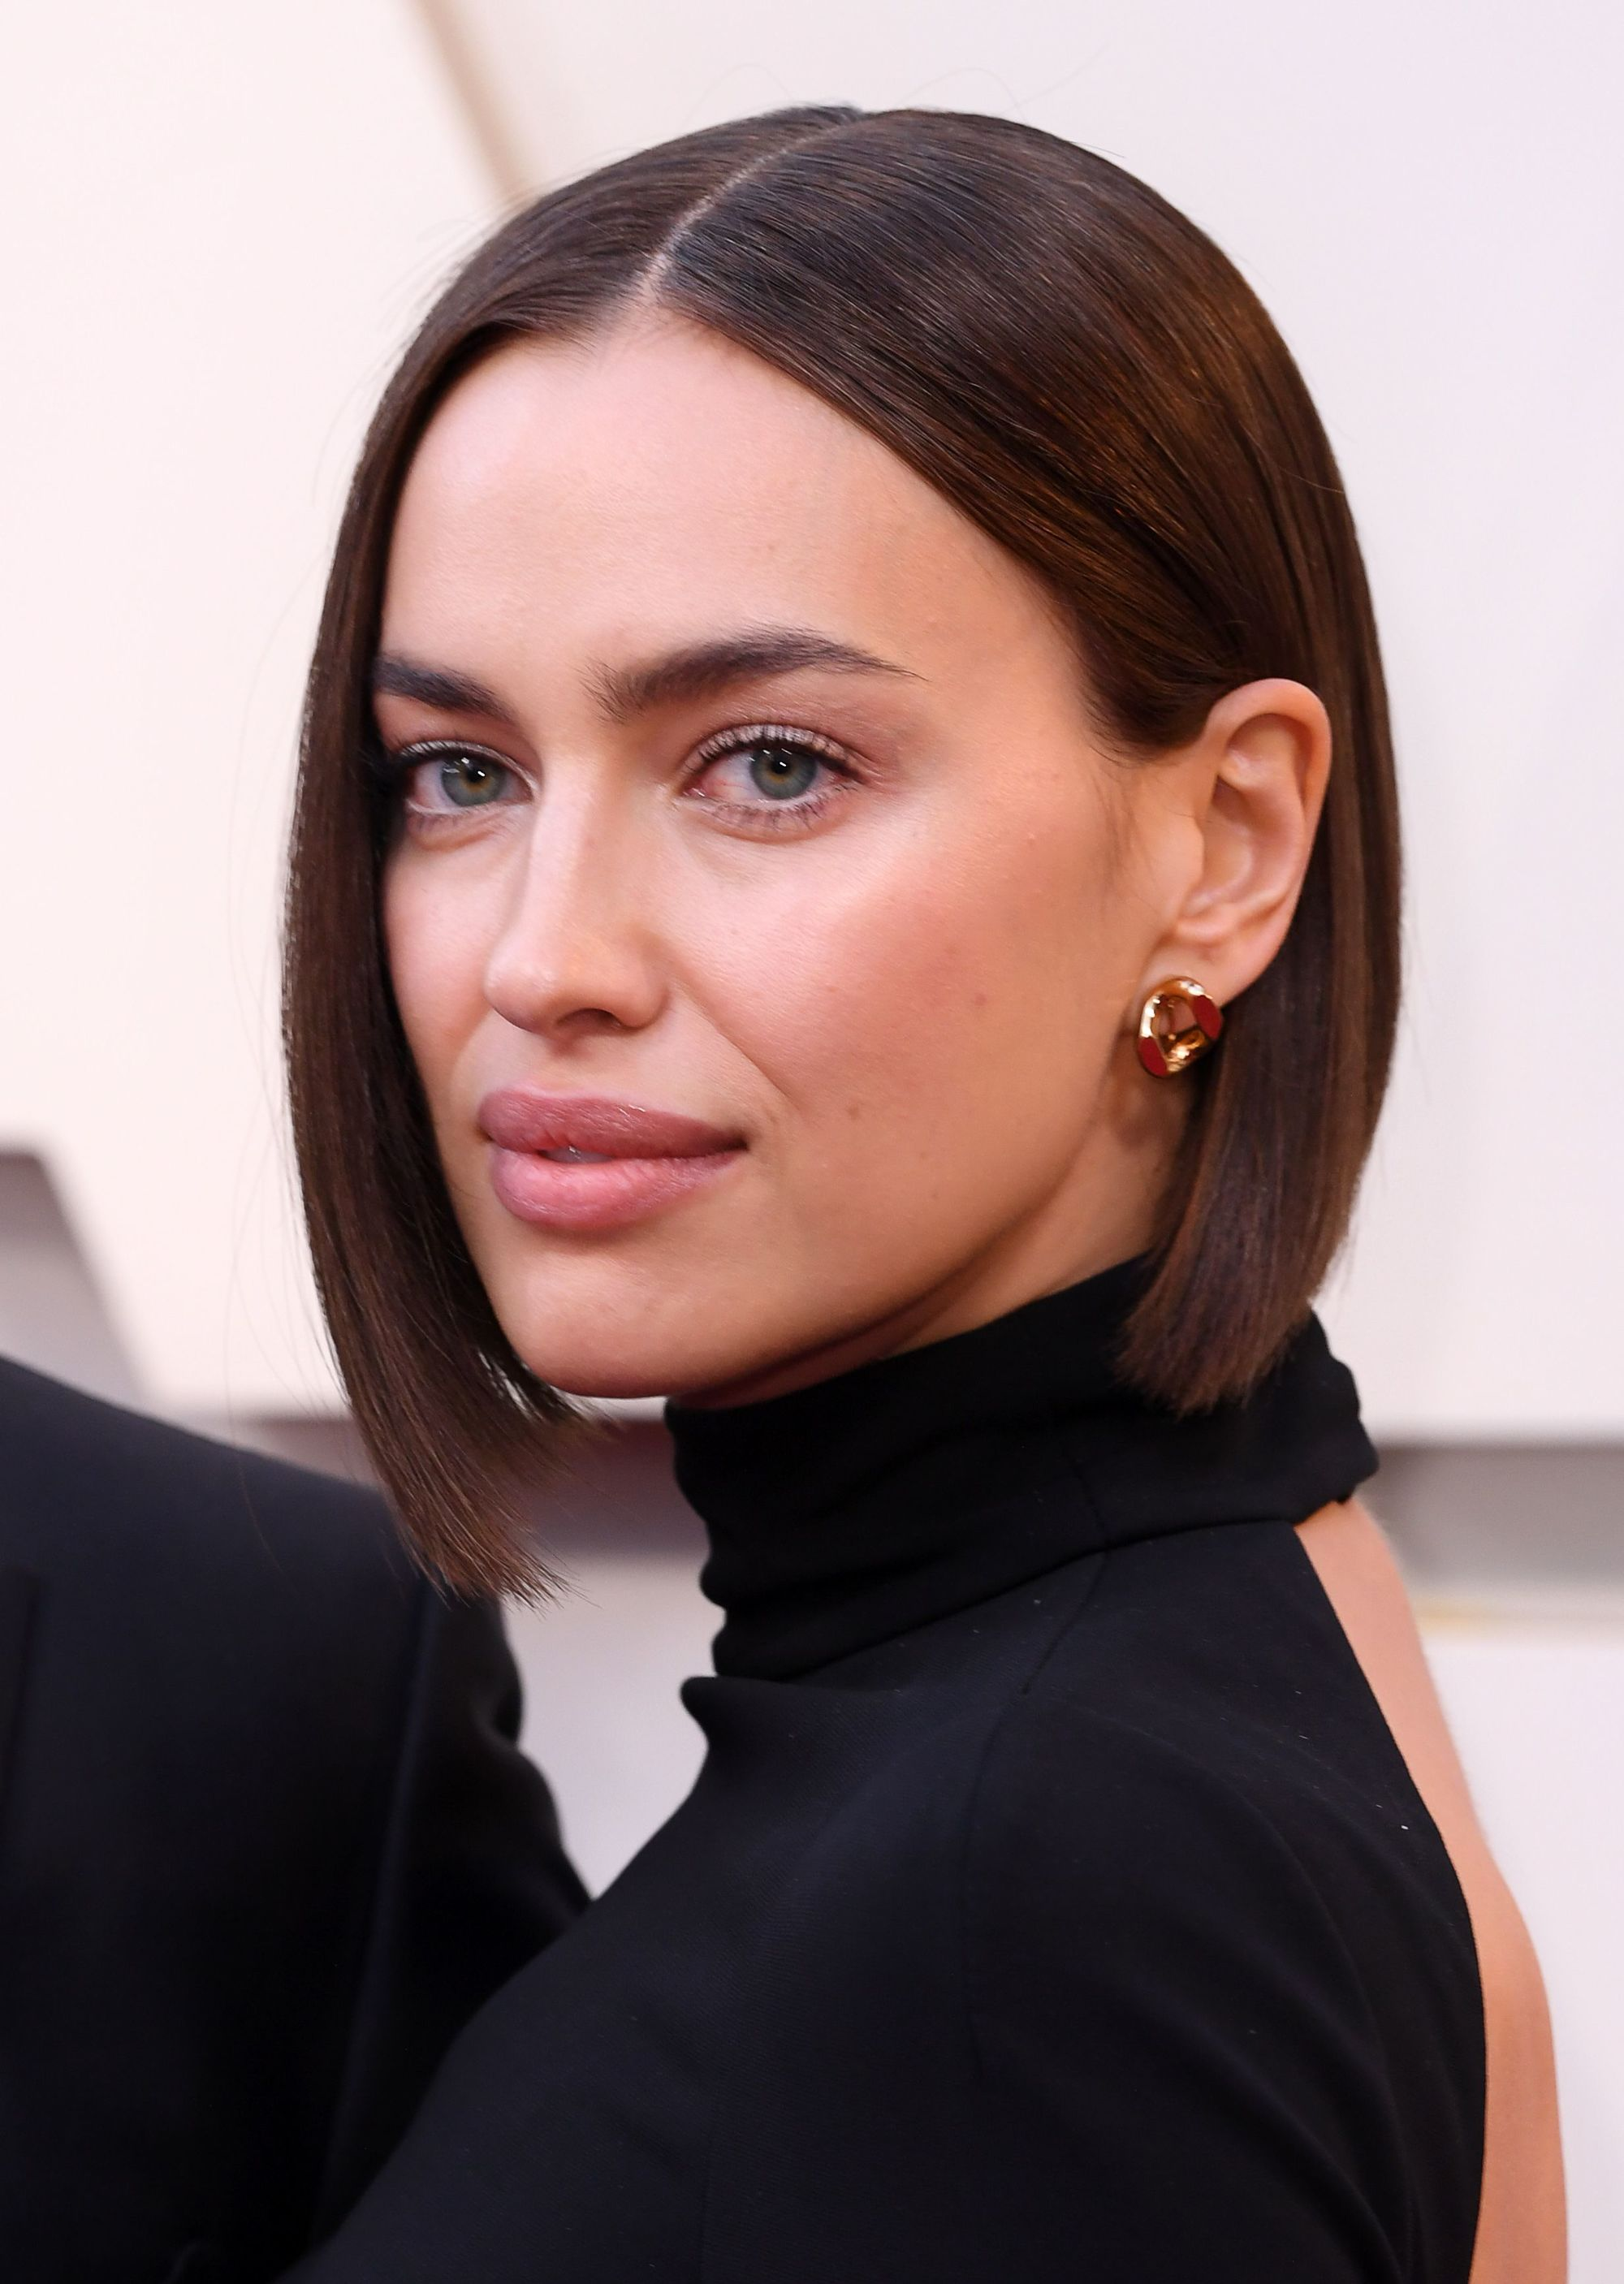 Spring haircuts: Irina Shayk at the Oscars with a short blunt dark brunette bob, wearing a high neck backless black dress